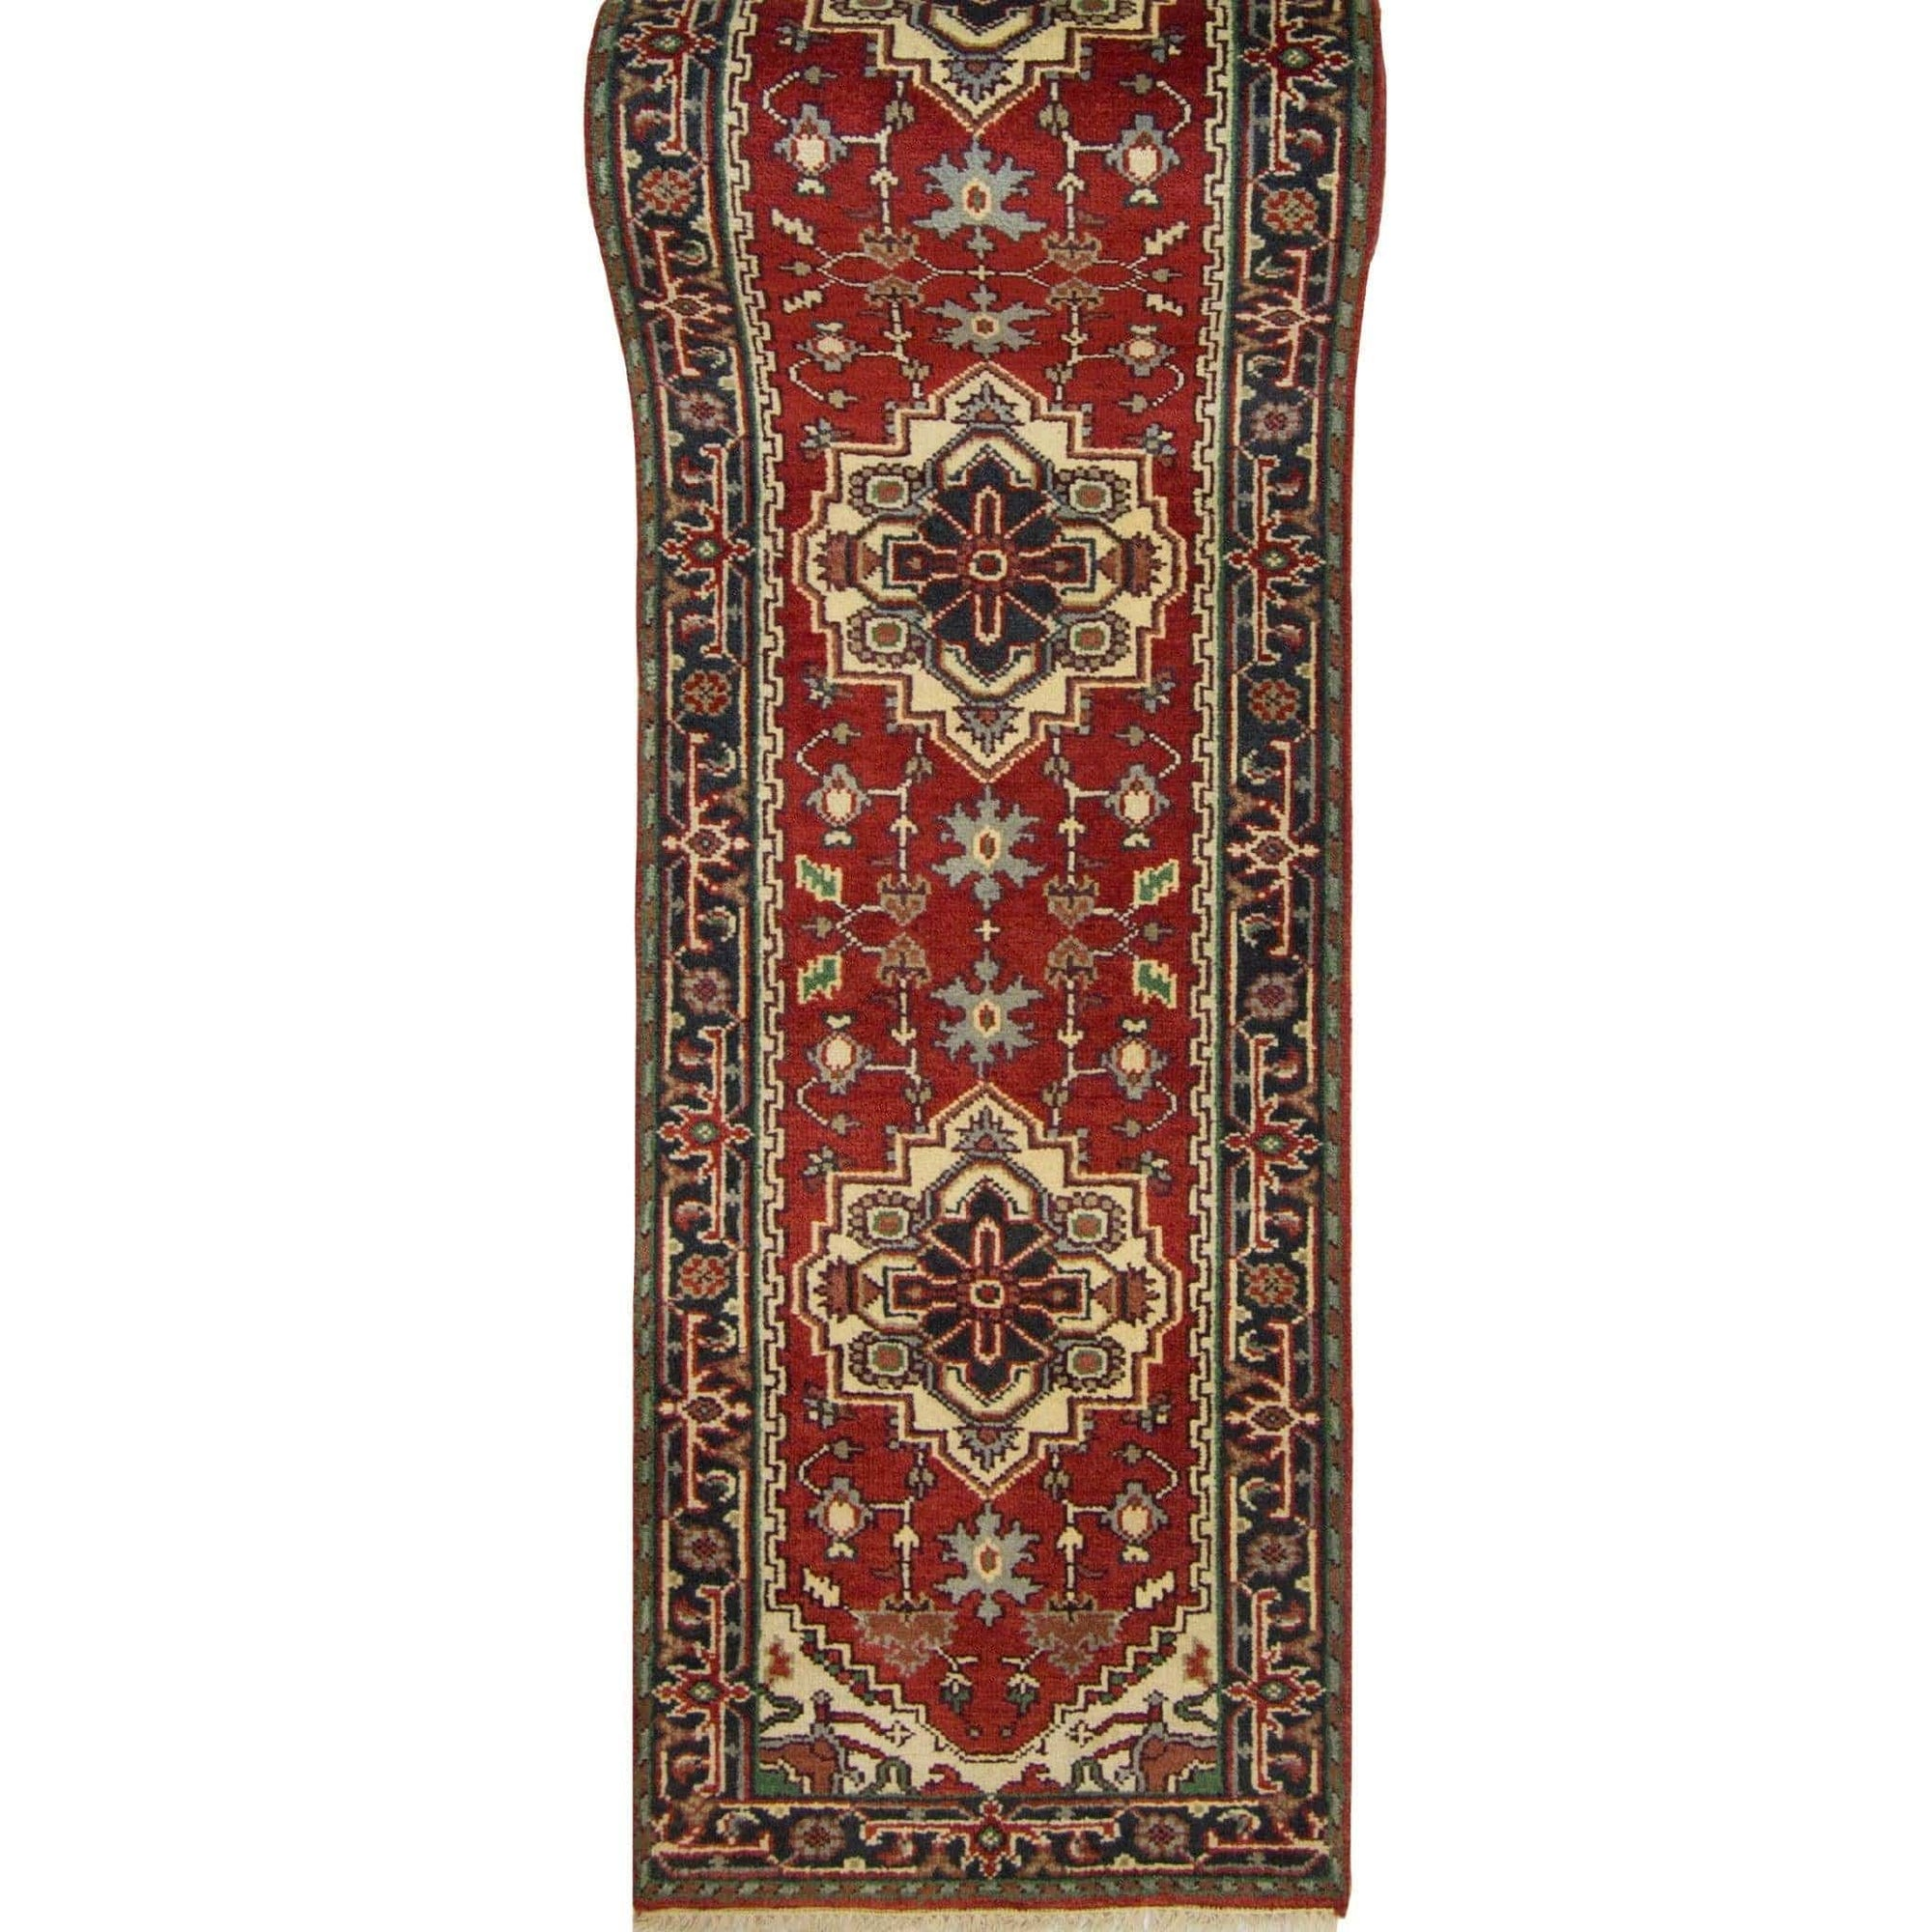 Hand-knotted Wool Persian Heriz Runner 80cm x 594cm Persian-Rug | House-of-Haghi | NewMarket | Auckland | NZ | Handmade Persian Rugs | Hand Knotted Persian Rugs